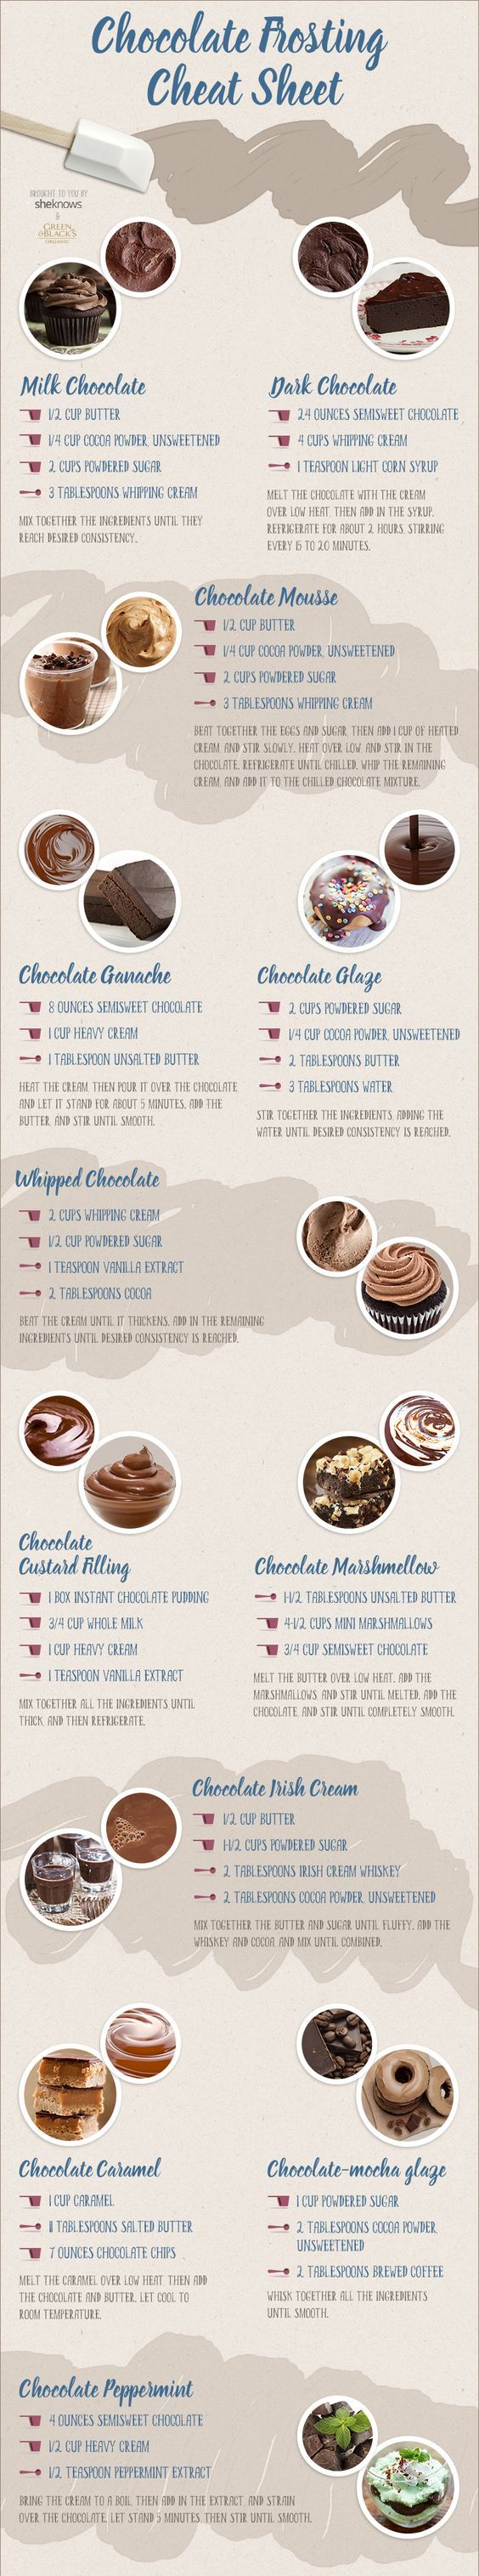 Nothing compares to a dreamy, luxuriant chocolate frosting — and we've got 12 recipes ready to go for you in one infographic.: